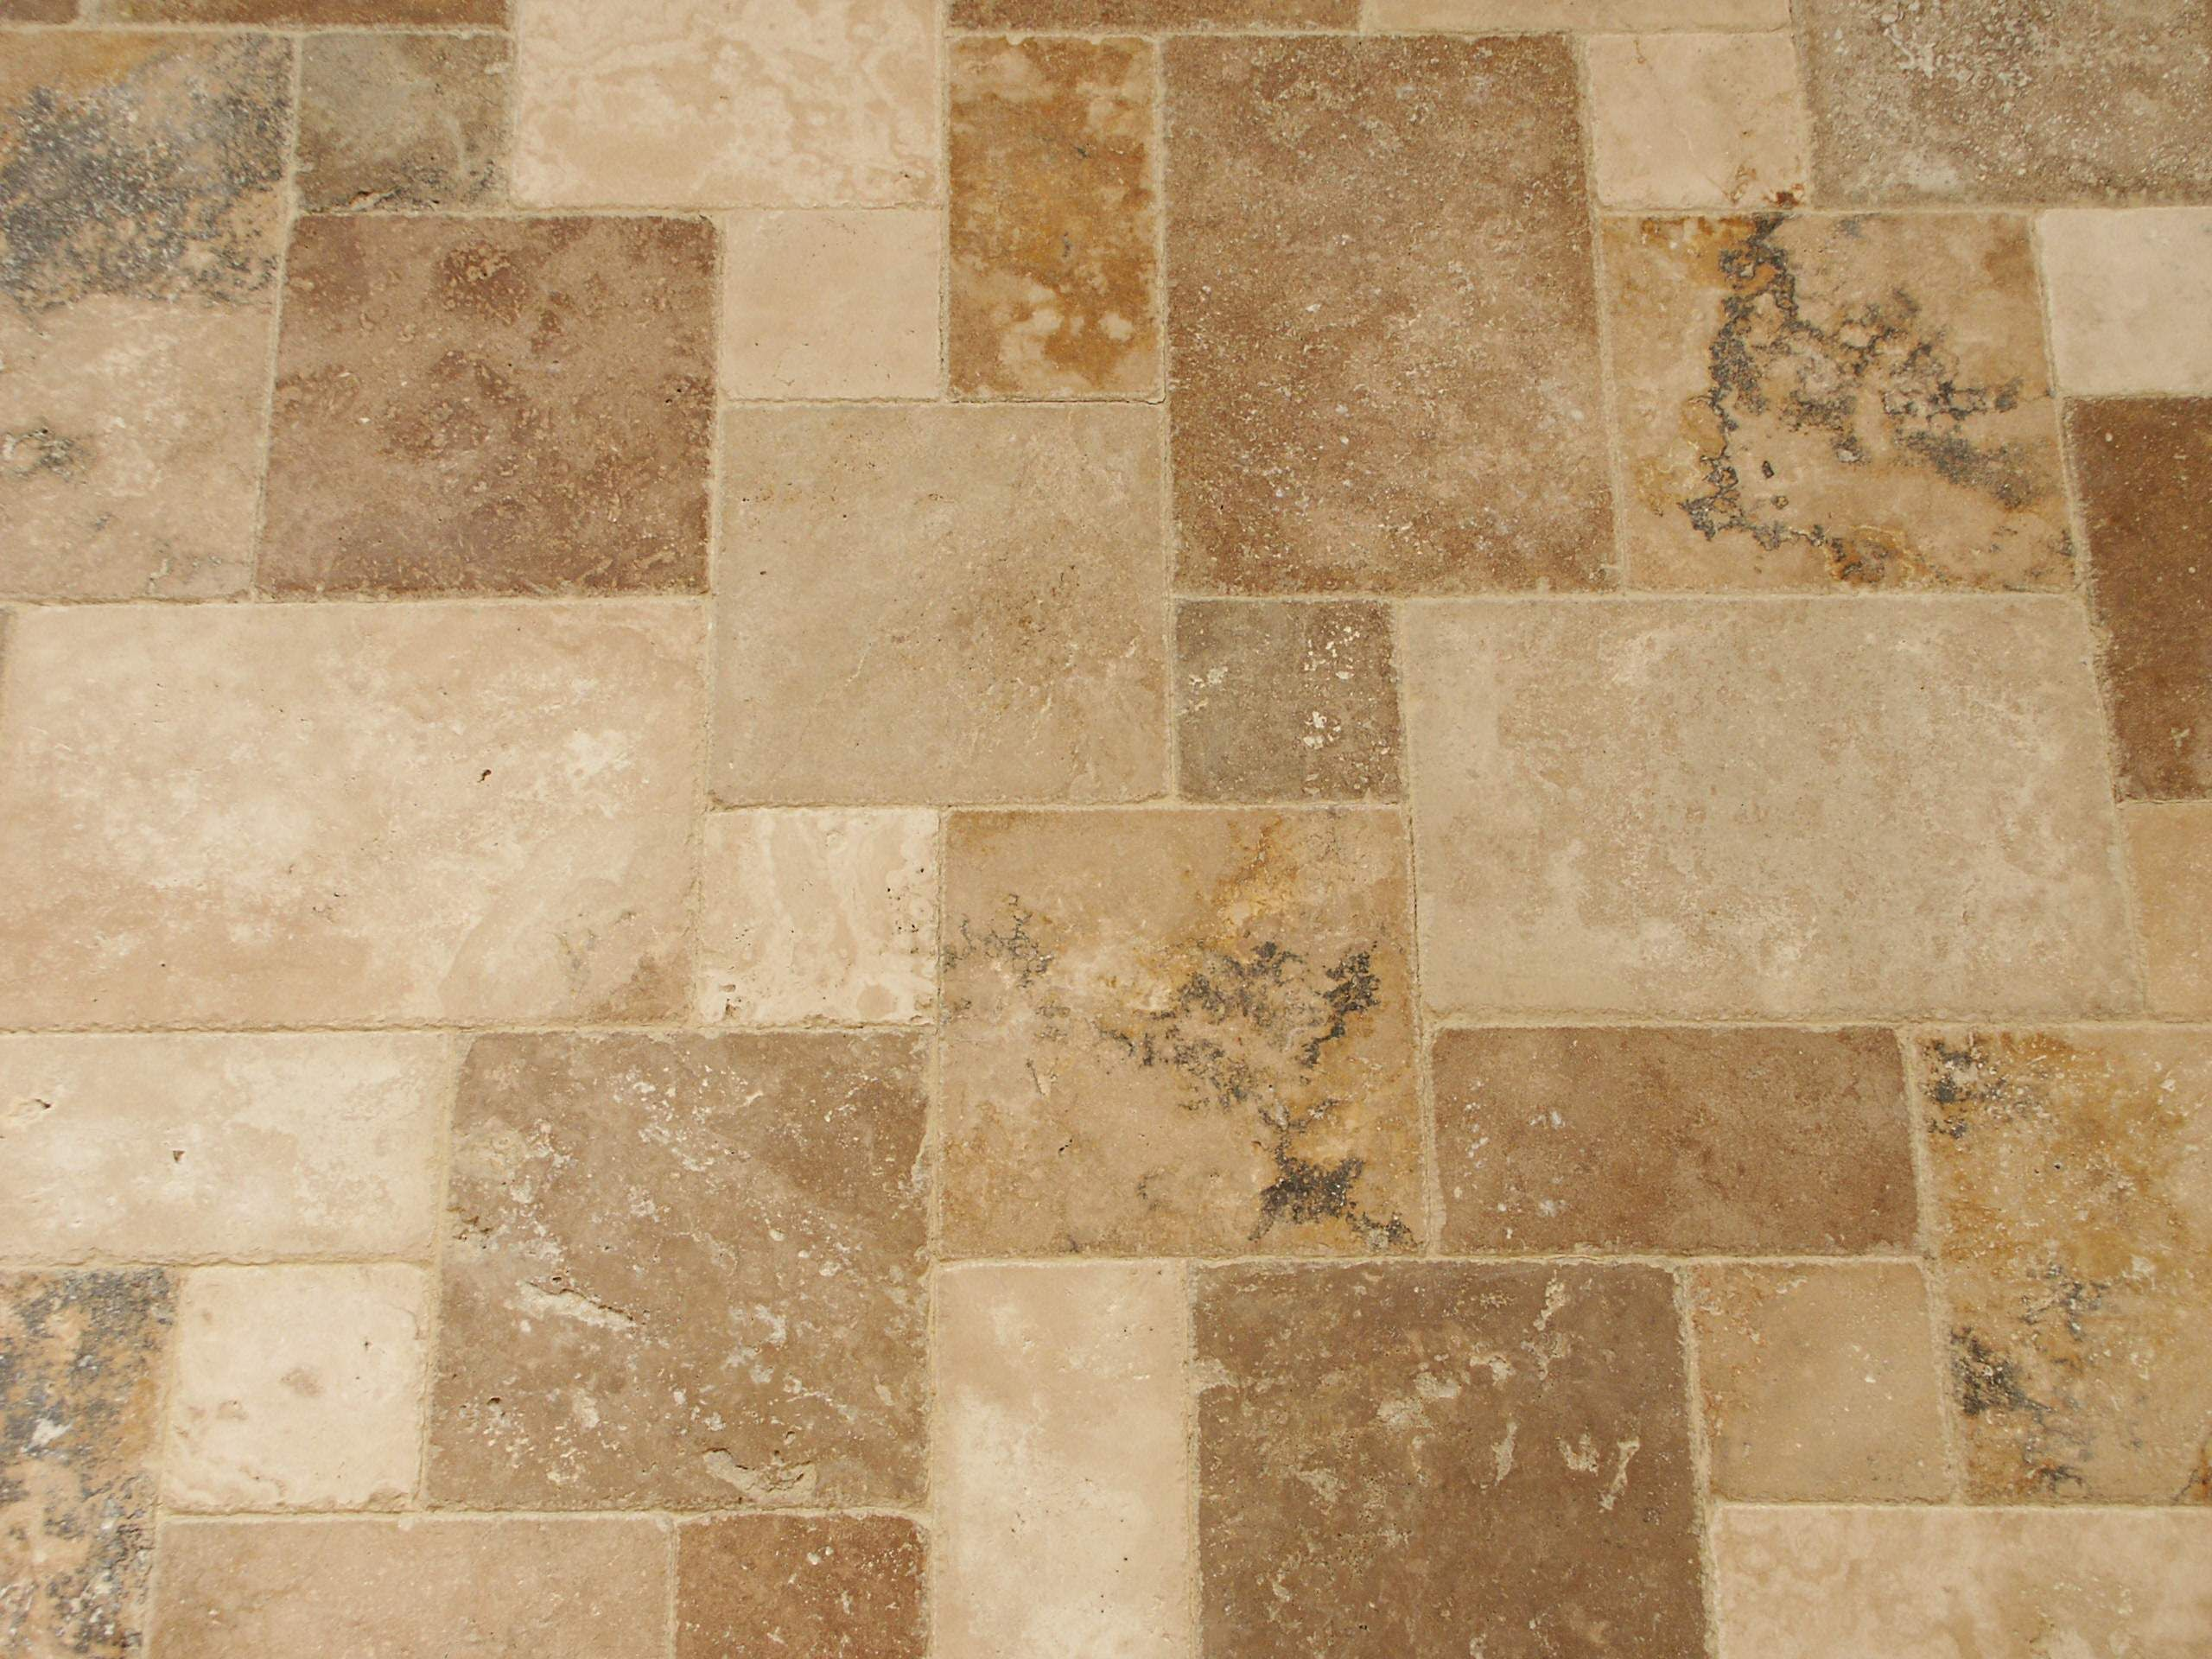 ... MaryBeth Kitchen Pinterest Travertine tile, Marbles and Mosaics